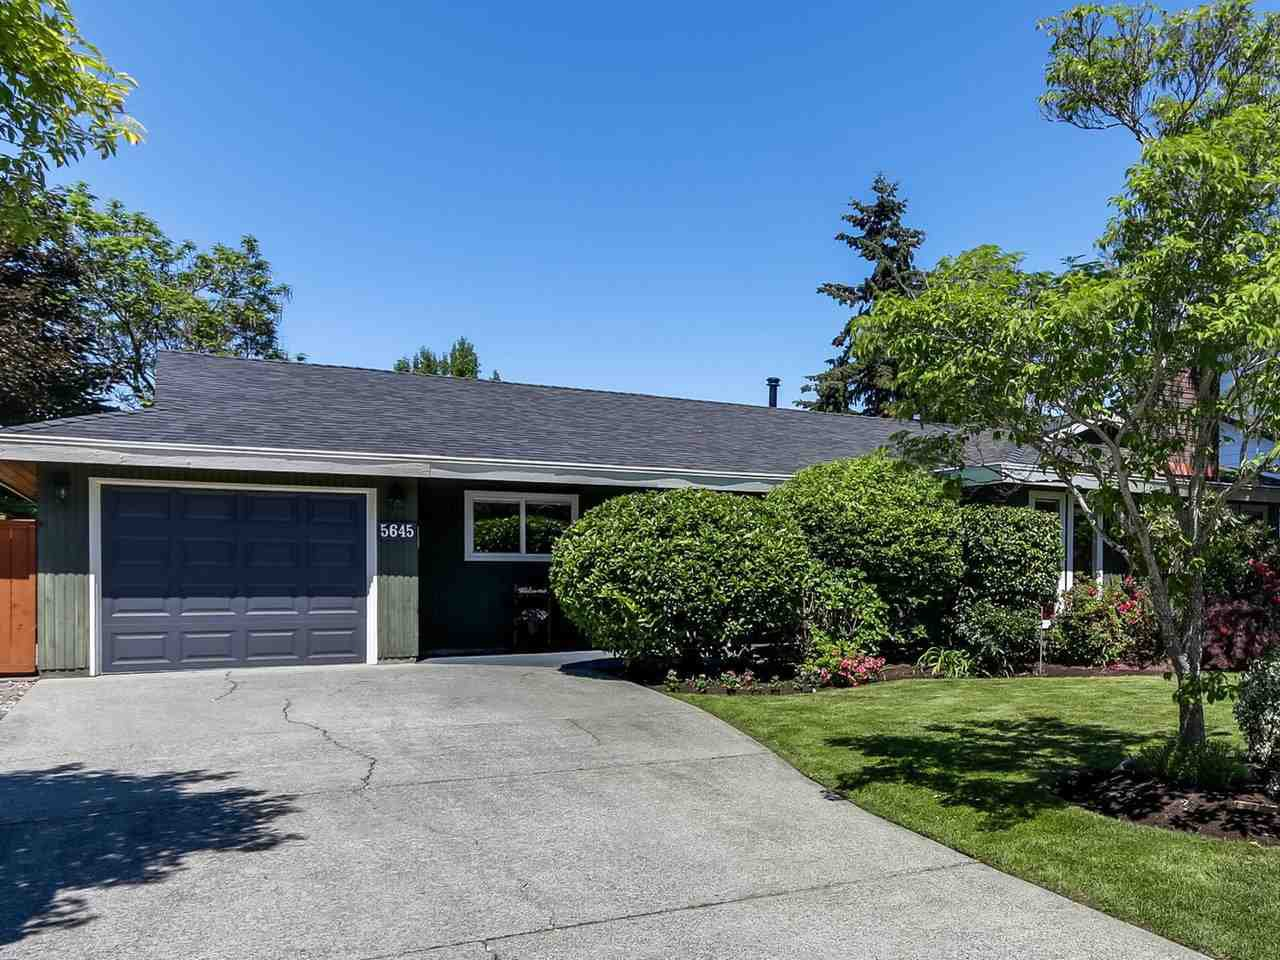 Main Photo: 5645 51 AVENUE in Delta: Hawthorne House for sale (Ladner)  : MLS®# R2271581